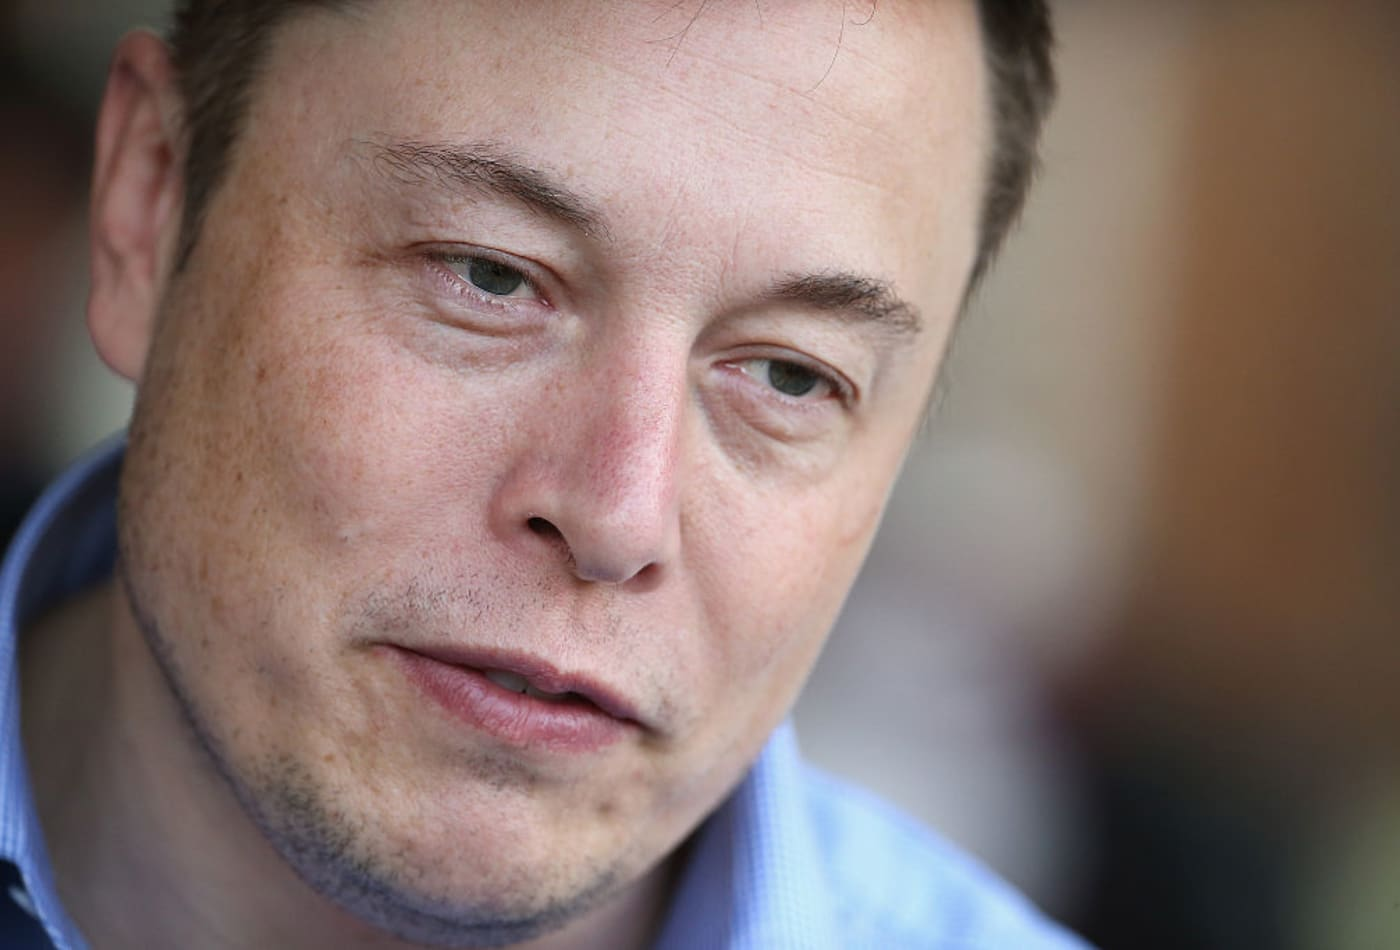 Why Elon Musk might be right about his artificial intelligence warnings